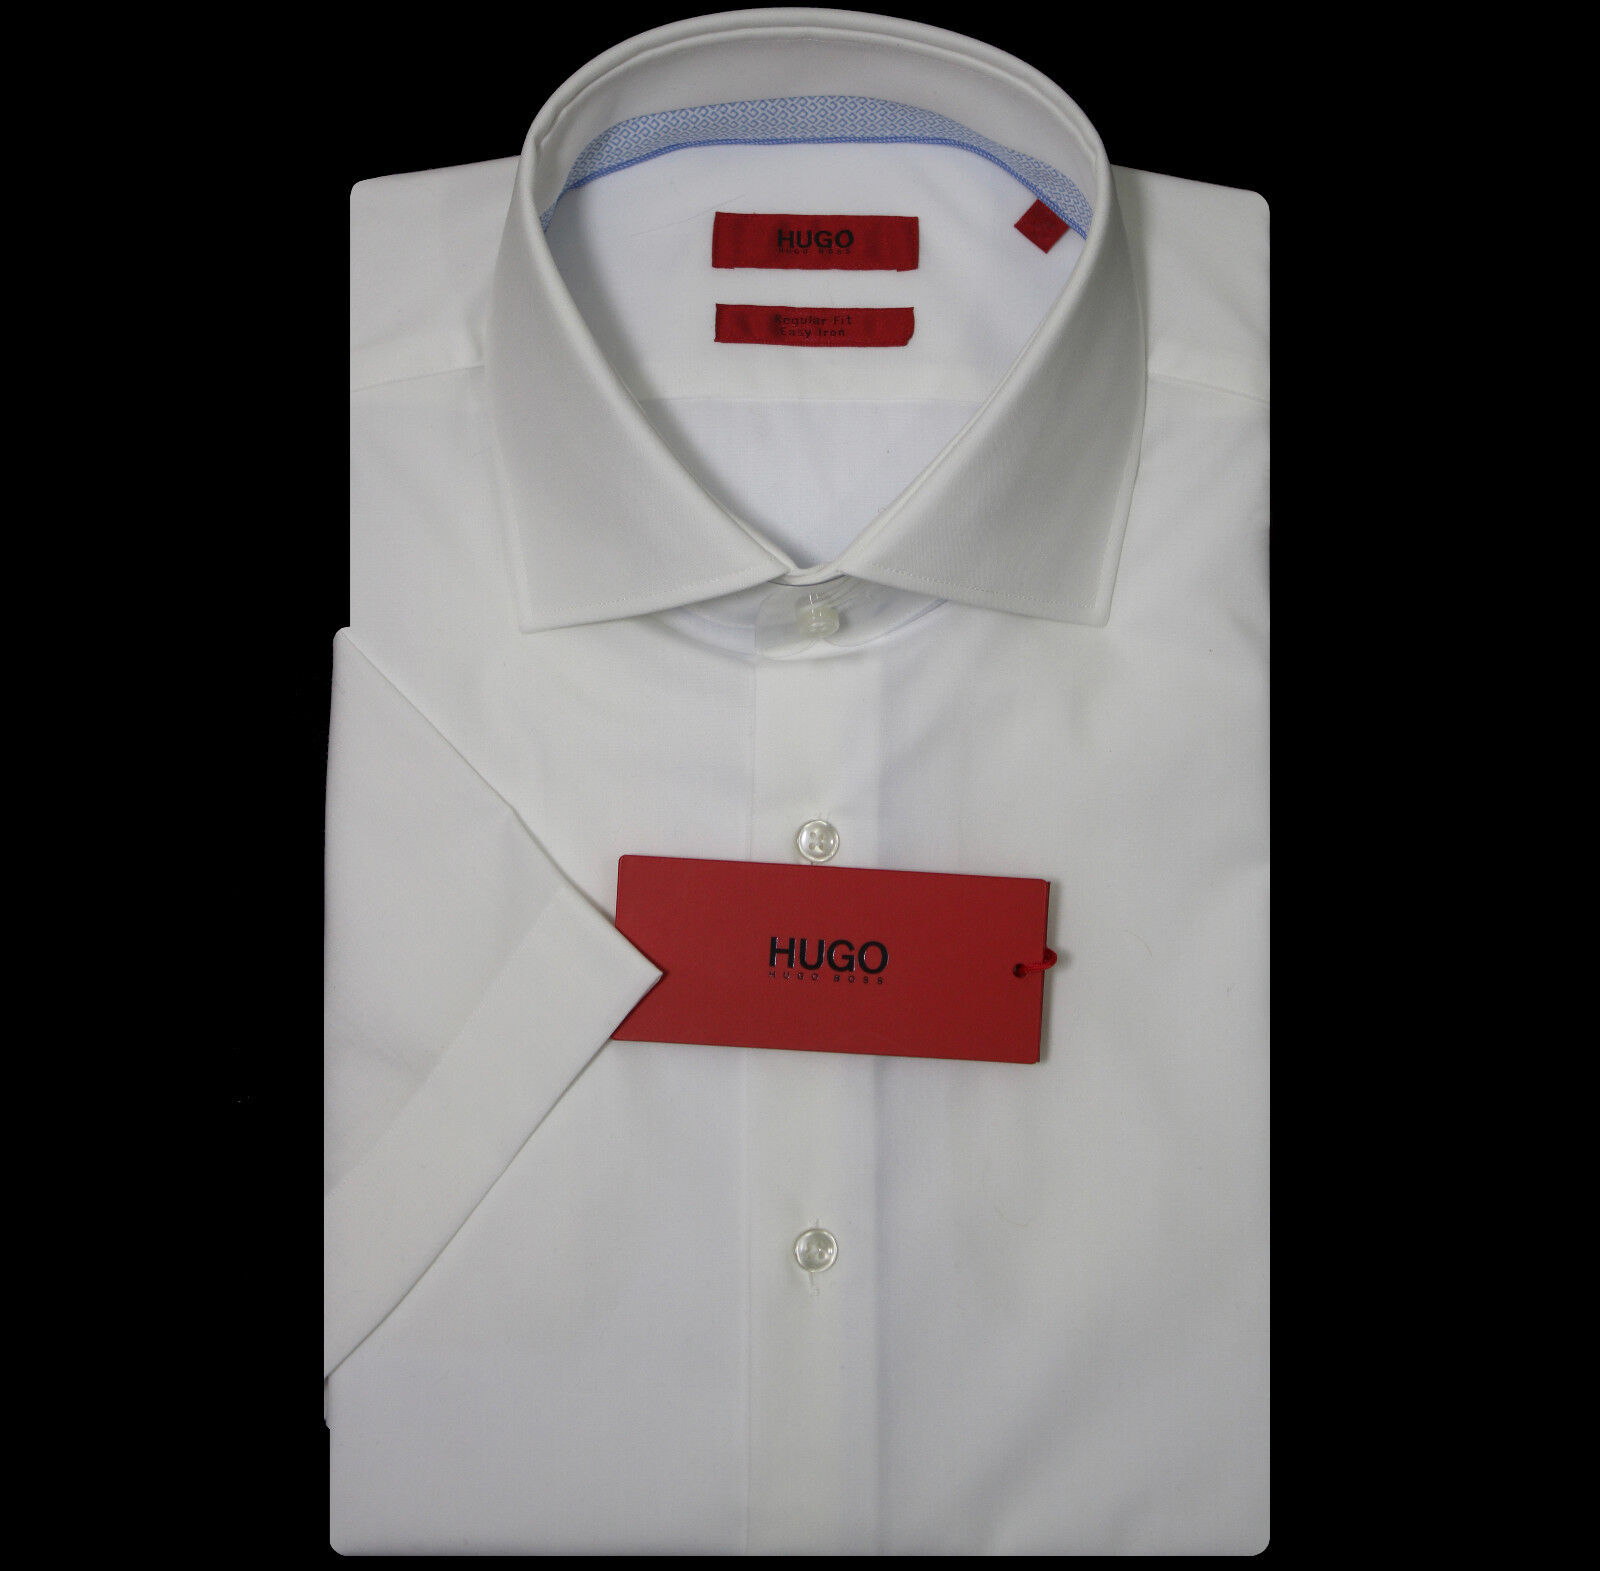 HUGO by HUGO BOSS Business-Hemd  mit kurzem Arm Gr. 42 NEU  Regular Fit